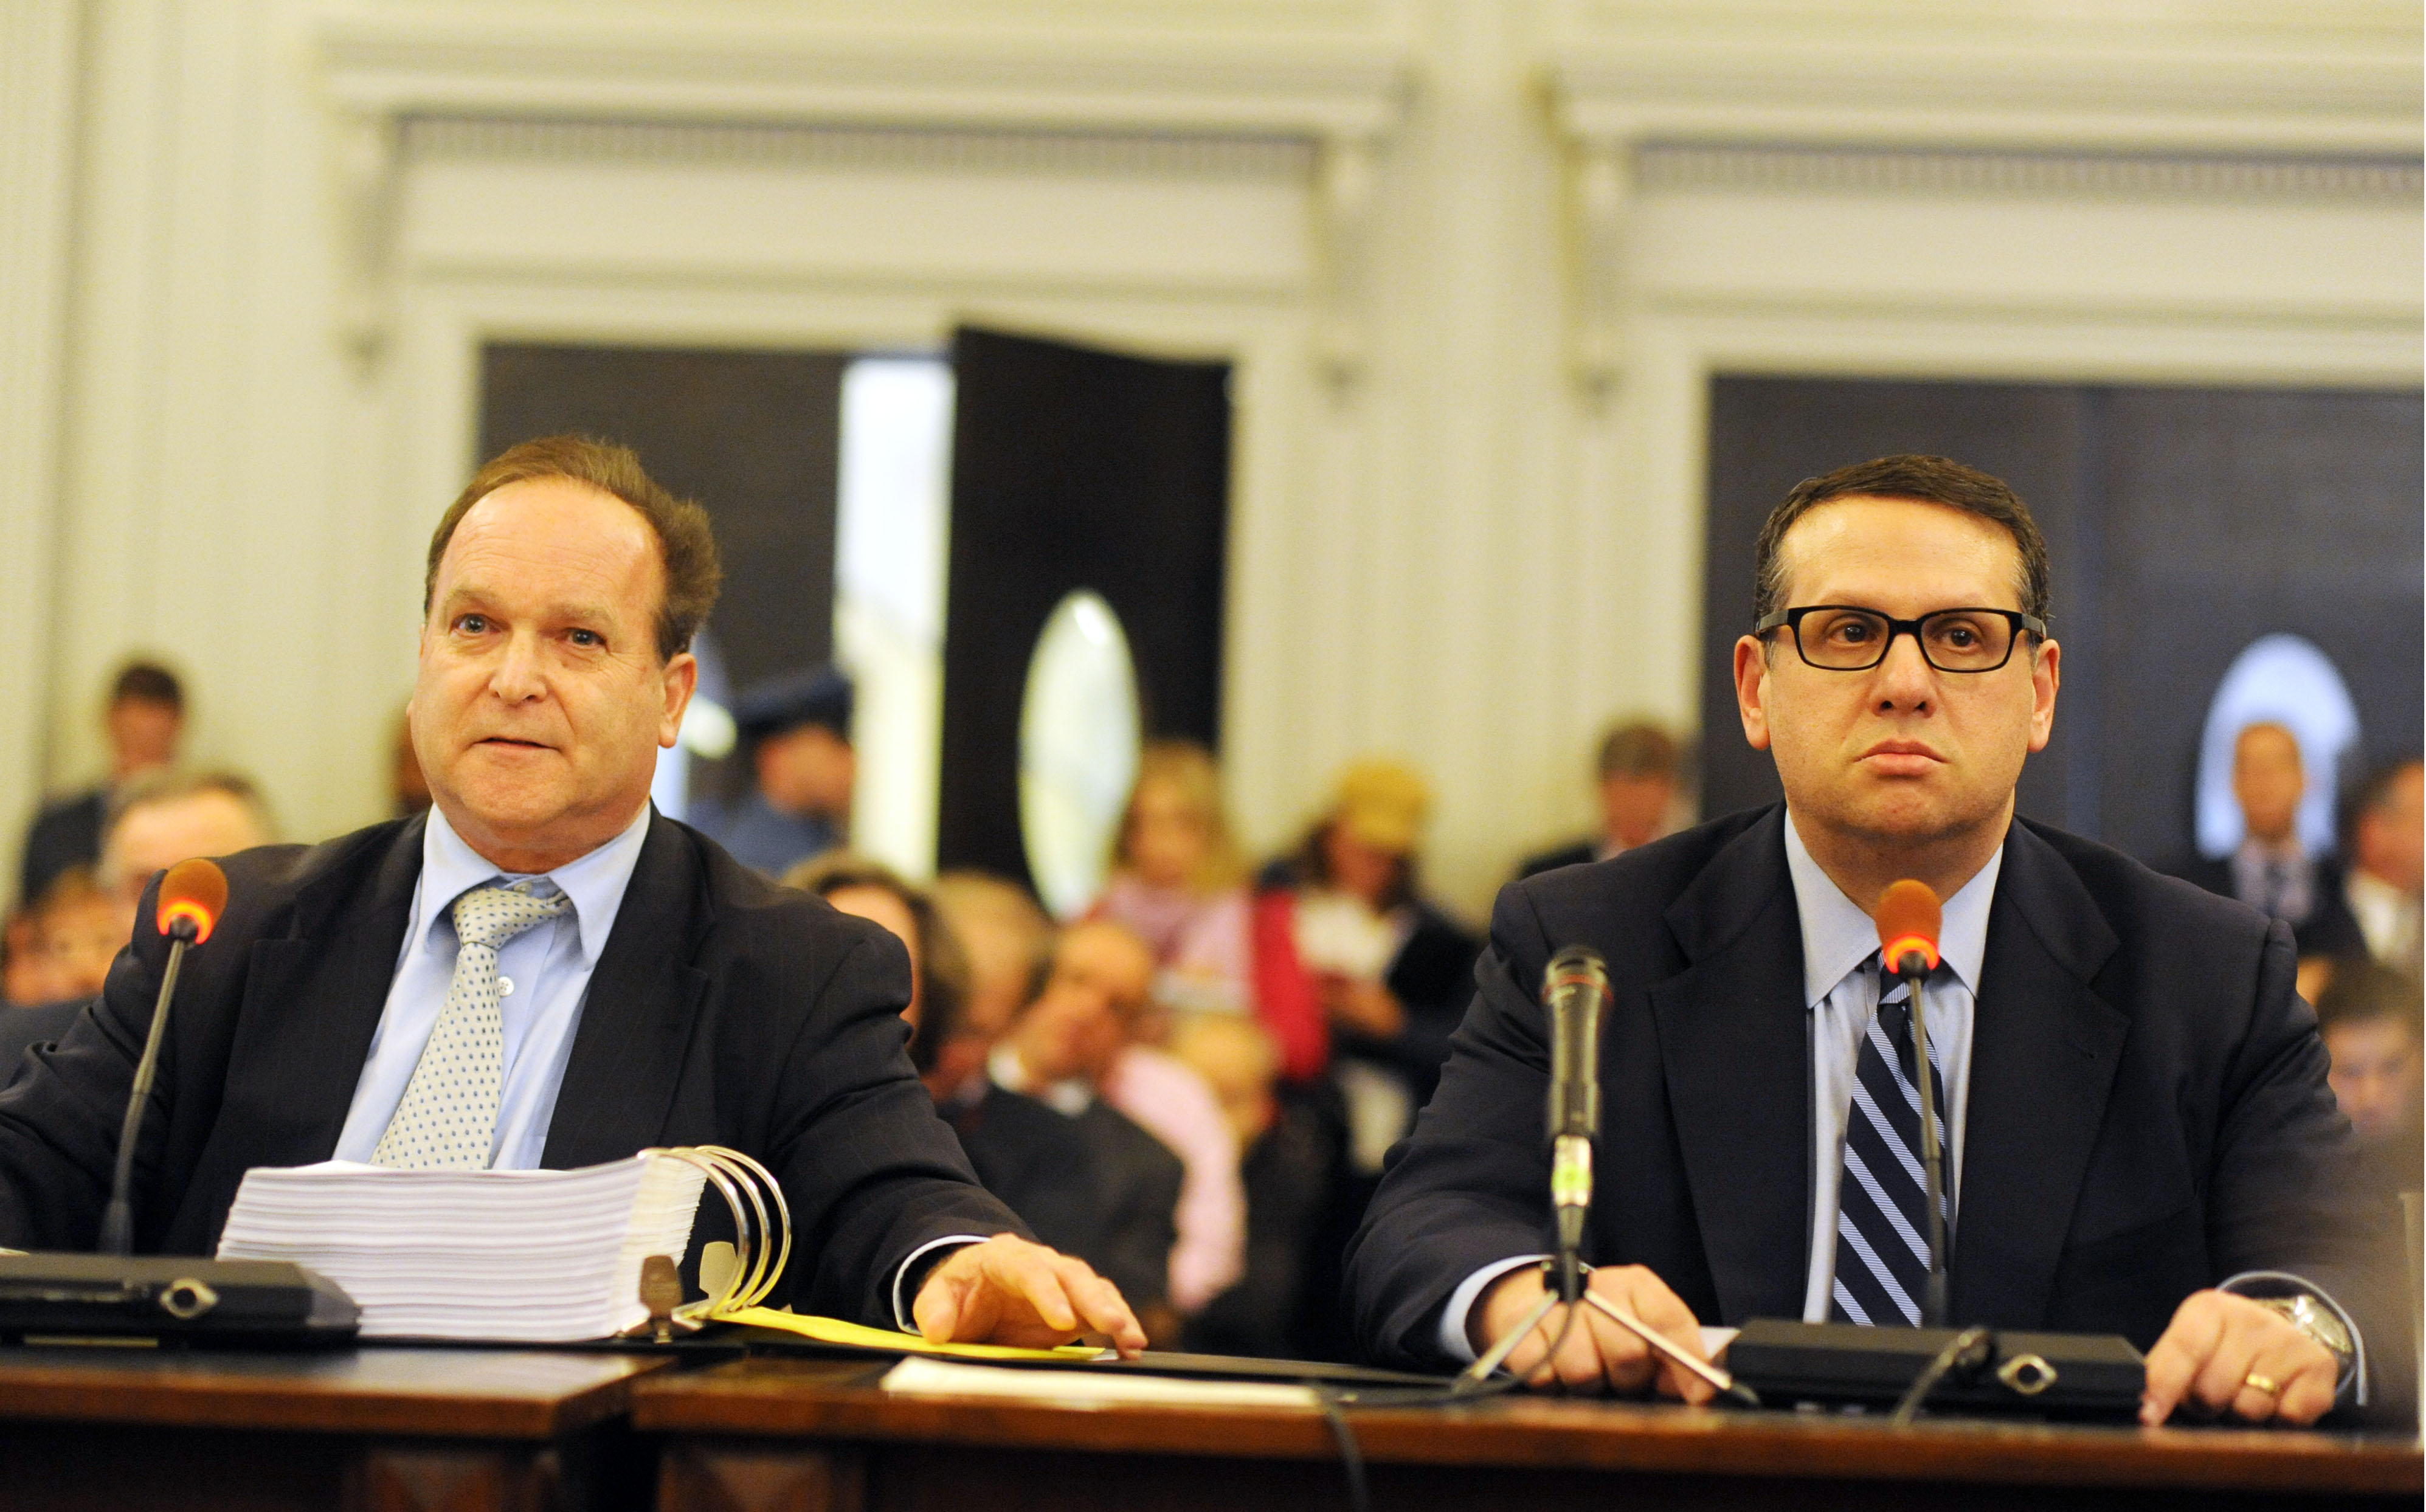 David Wildstein, right, with his attorney, Alan Zegas, while Wildstein was testifying before the New Jersey Assembly's Transportation Committee. (Getty)